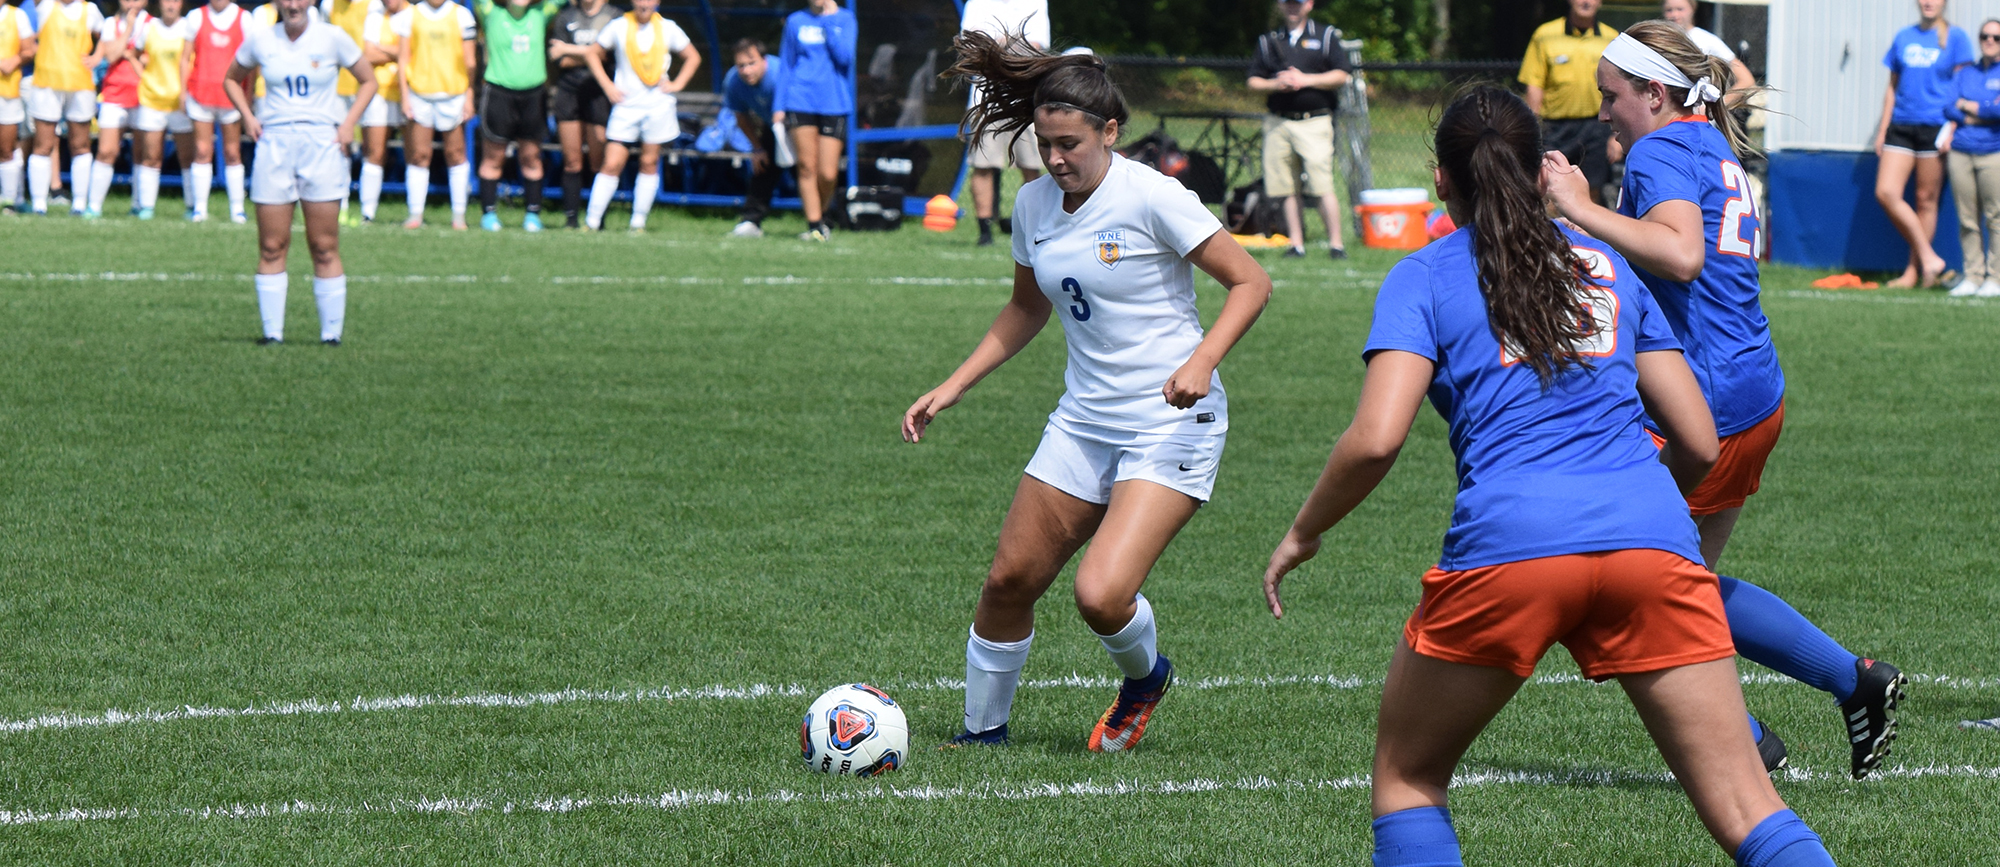 Sophomore Morgan Smith recorded a goal and an assist in Western New England's 2-1 win over Keene State on Saturday. (Photo by Rachael Margossian)